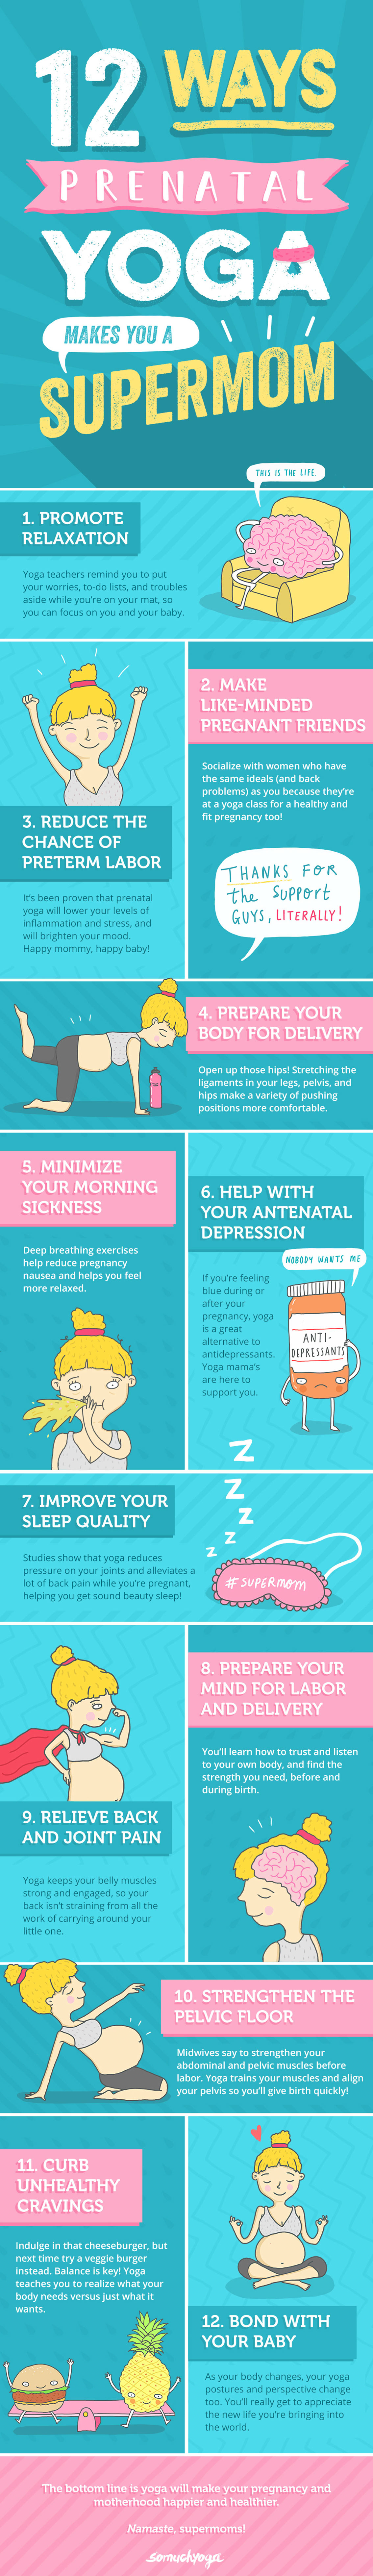 Benefits of Prenatal Yoga Exercises Infographic